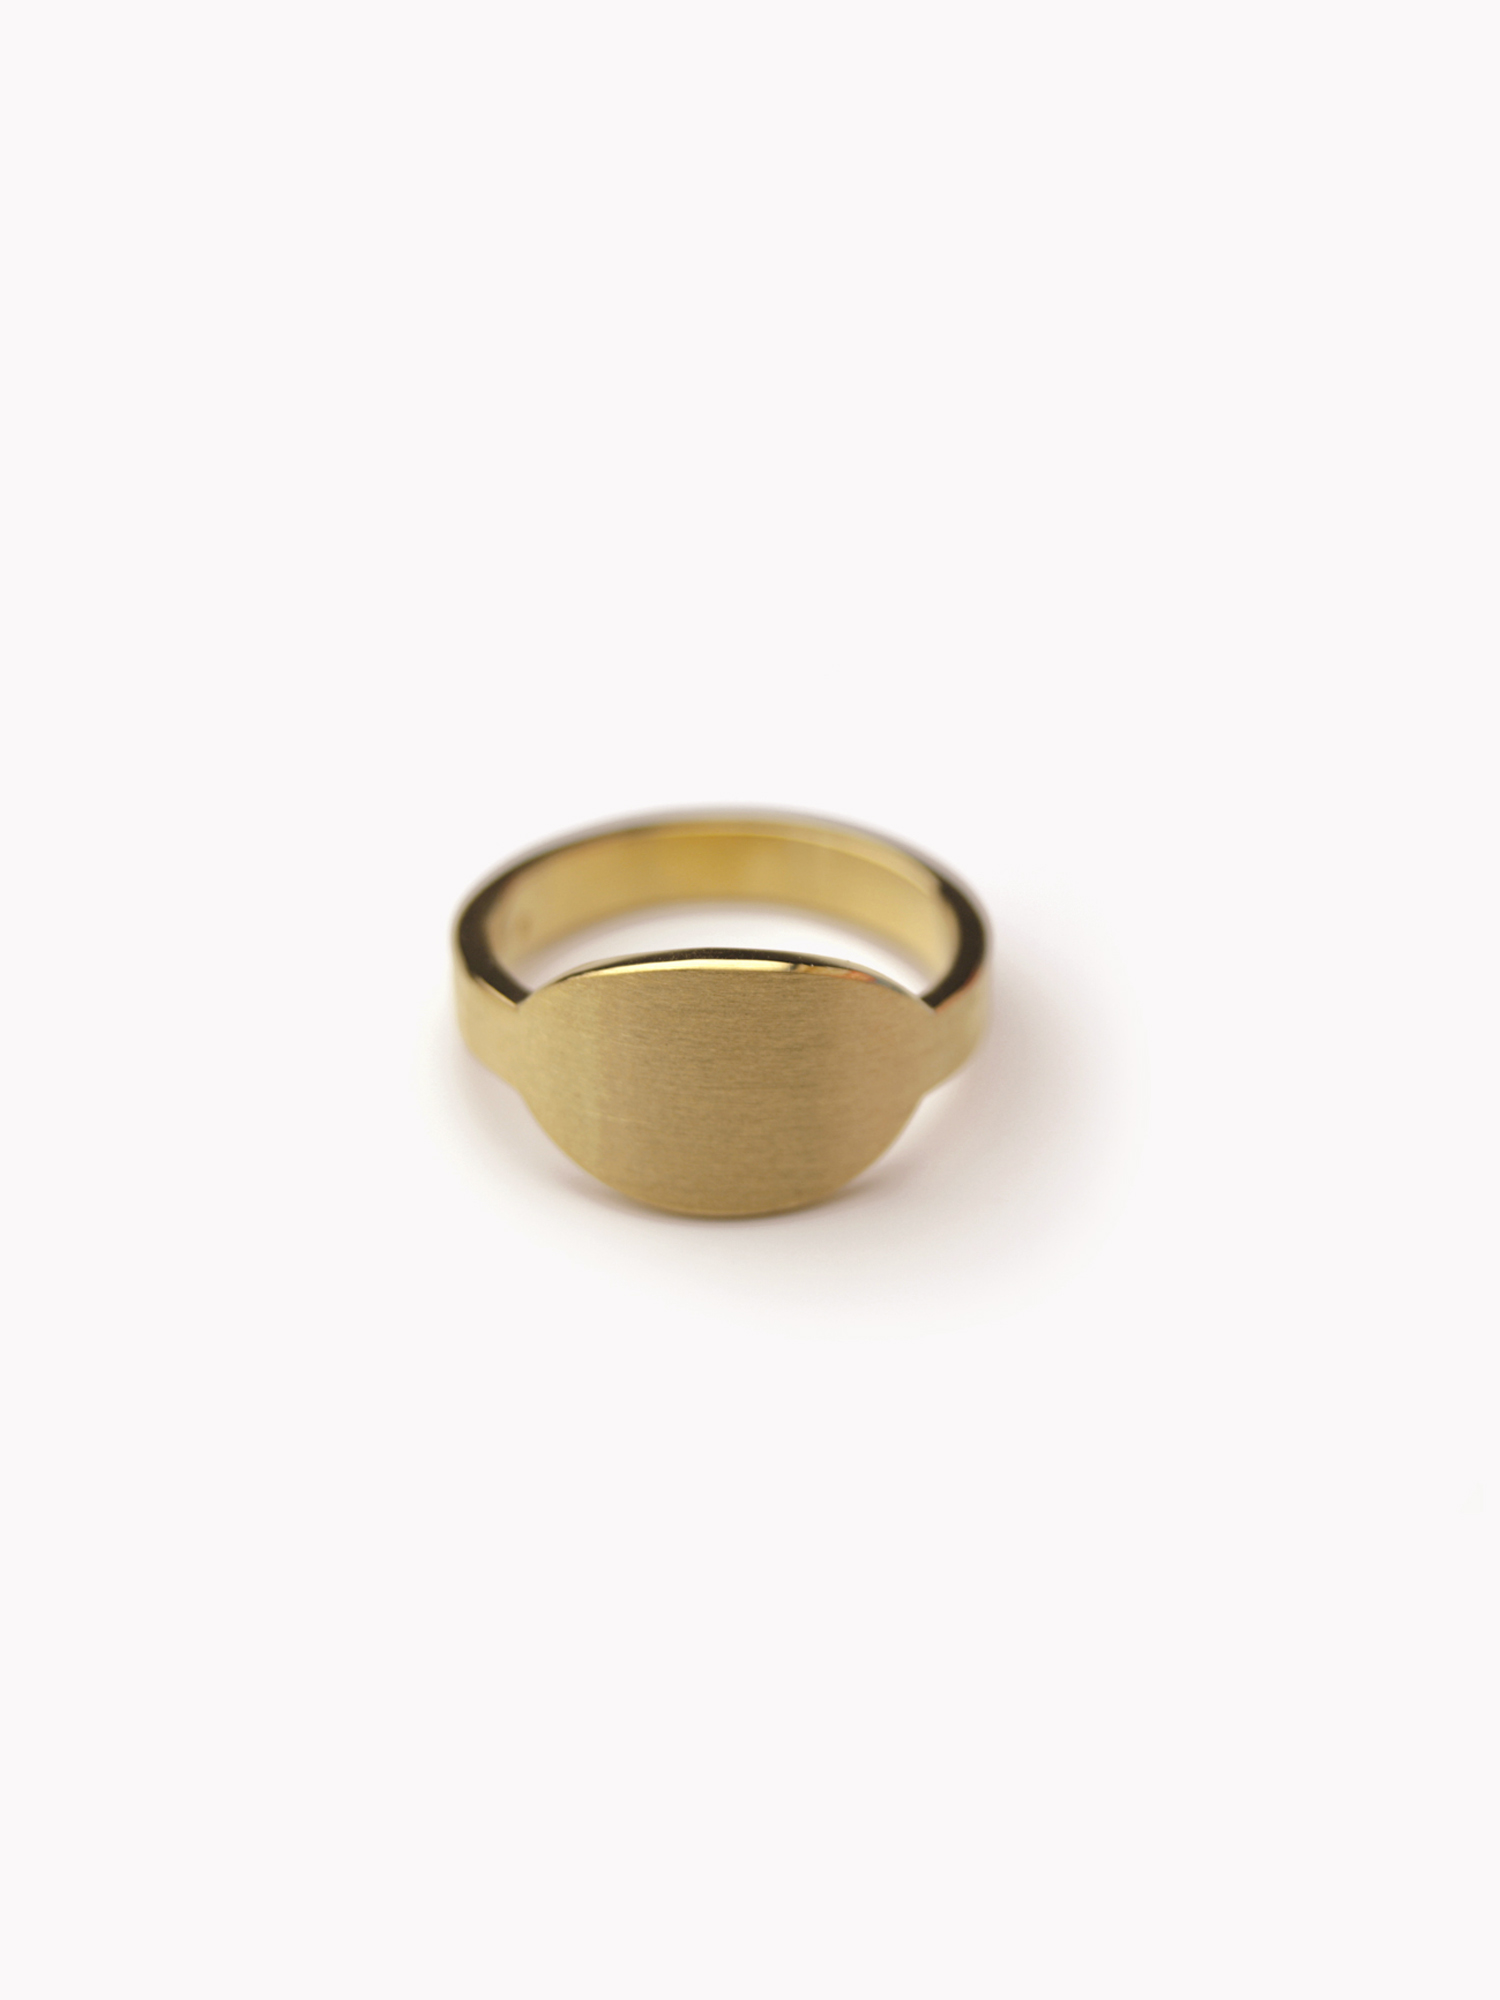 Siegelring Anda, queroval mittelgroß in 585 Gold  Signet ring Anda, horizontal oval medium big in 14kt gold